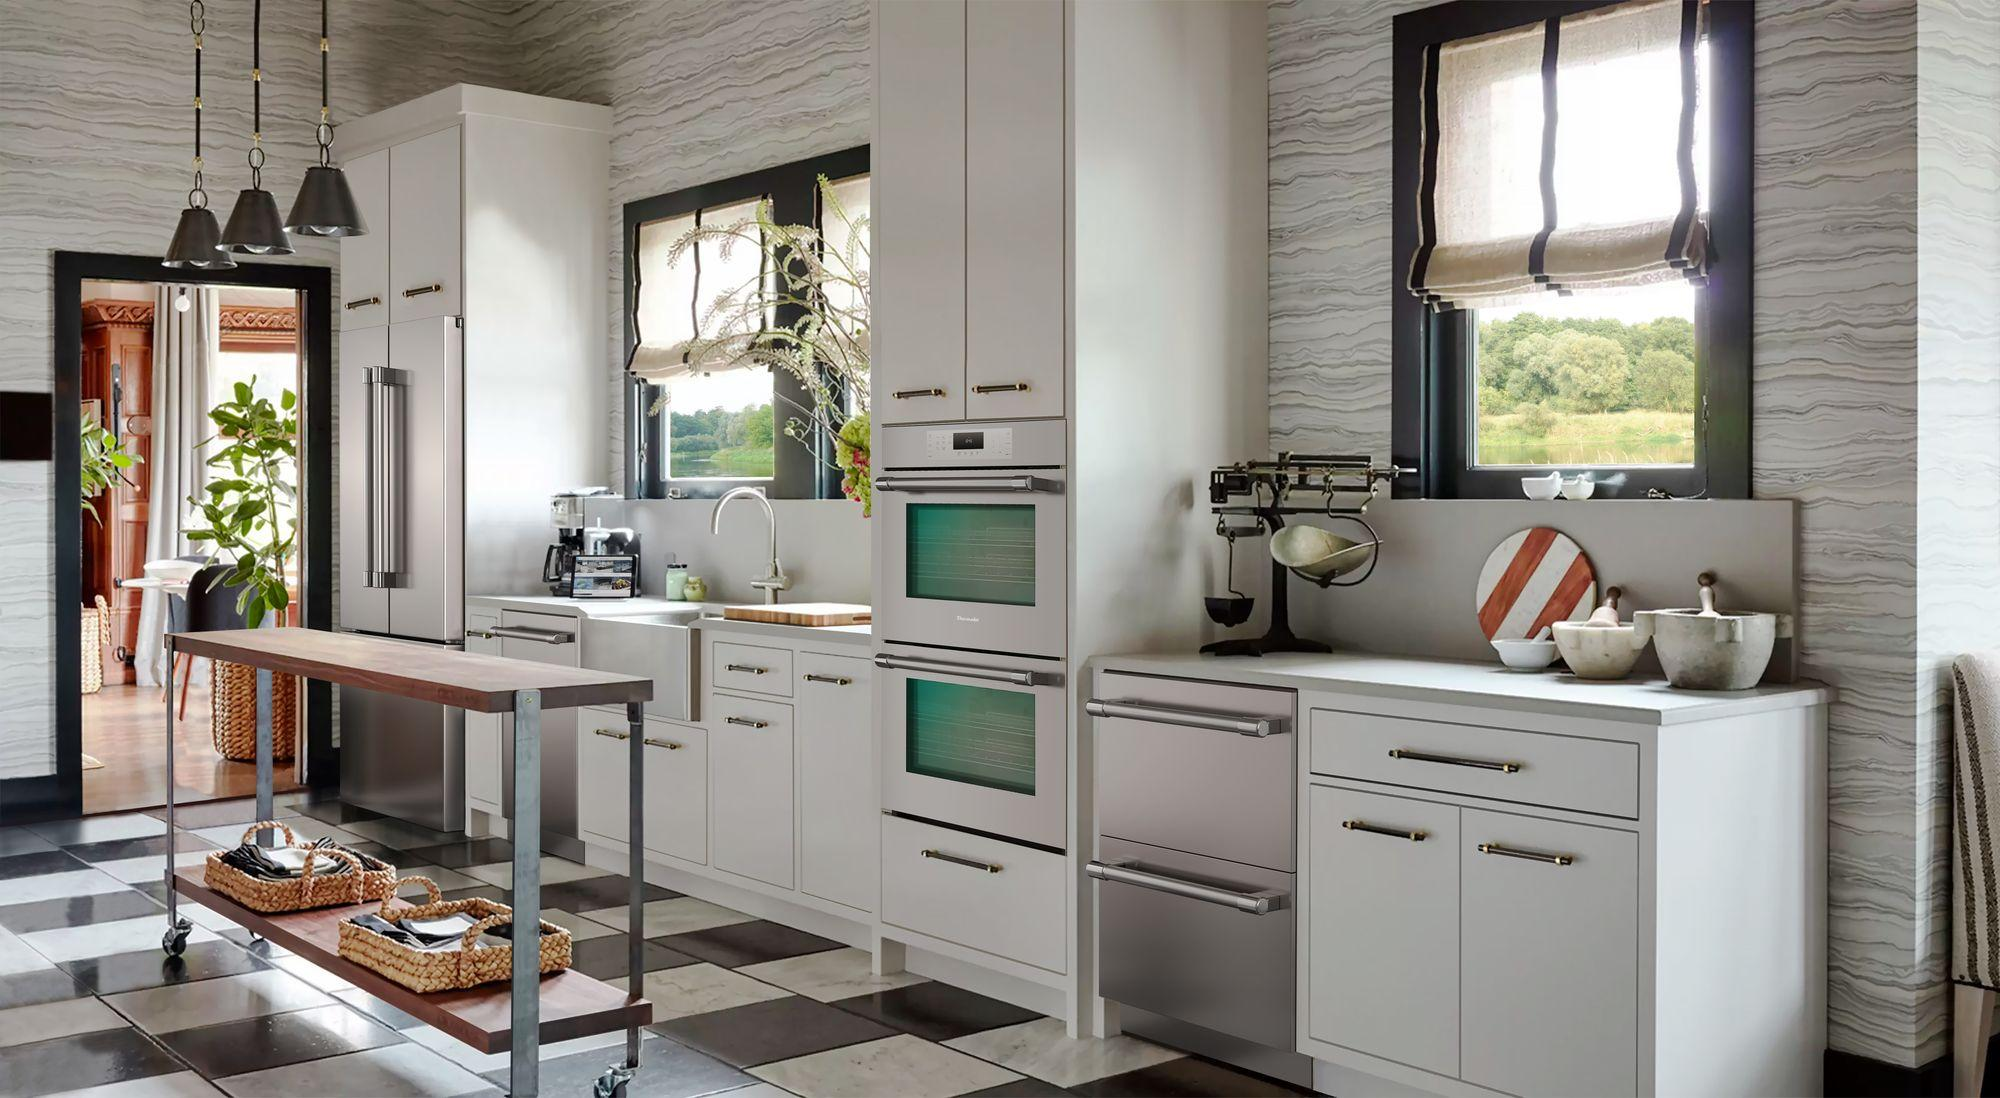 Me302yp Thermador Double Wall Oven 30 Stainless Steel Me302yp Manuel Joseph Appliance Center